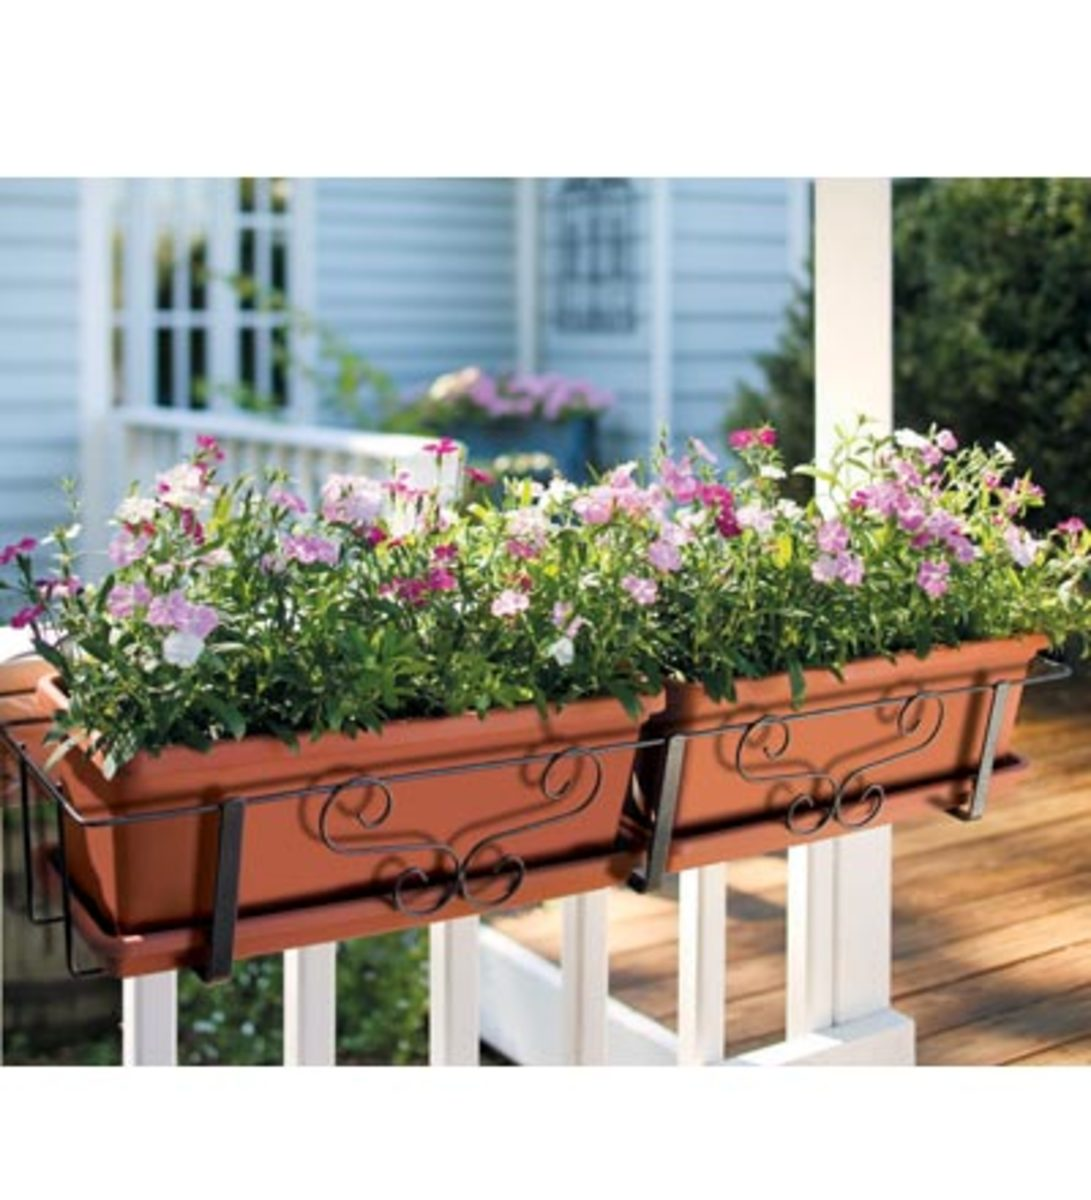 Terracotta colored plastic boxes, hung from the balcony railing, can bring color to any balcony.